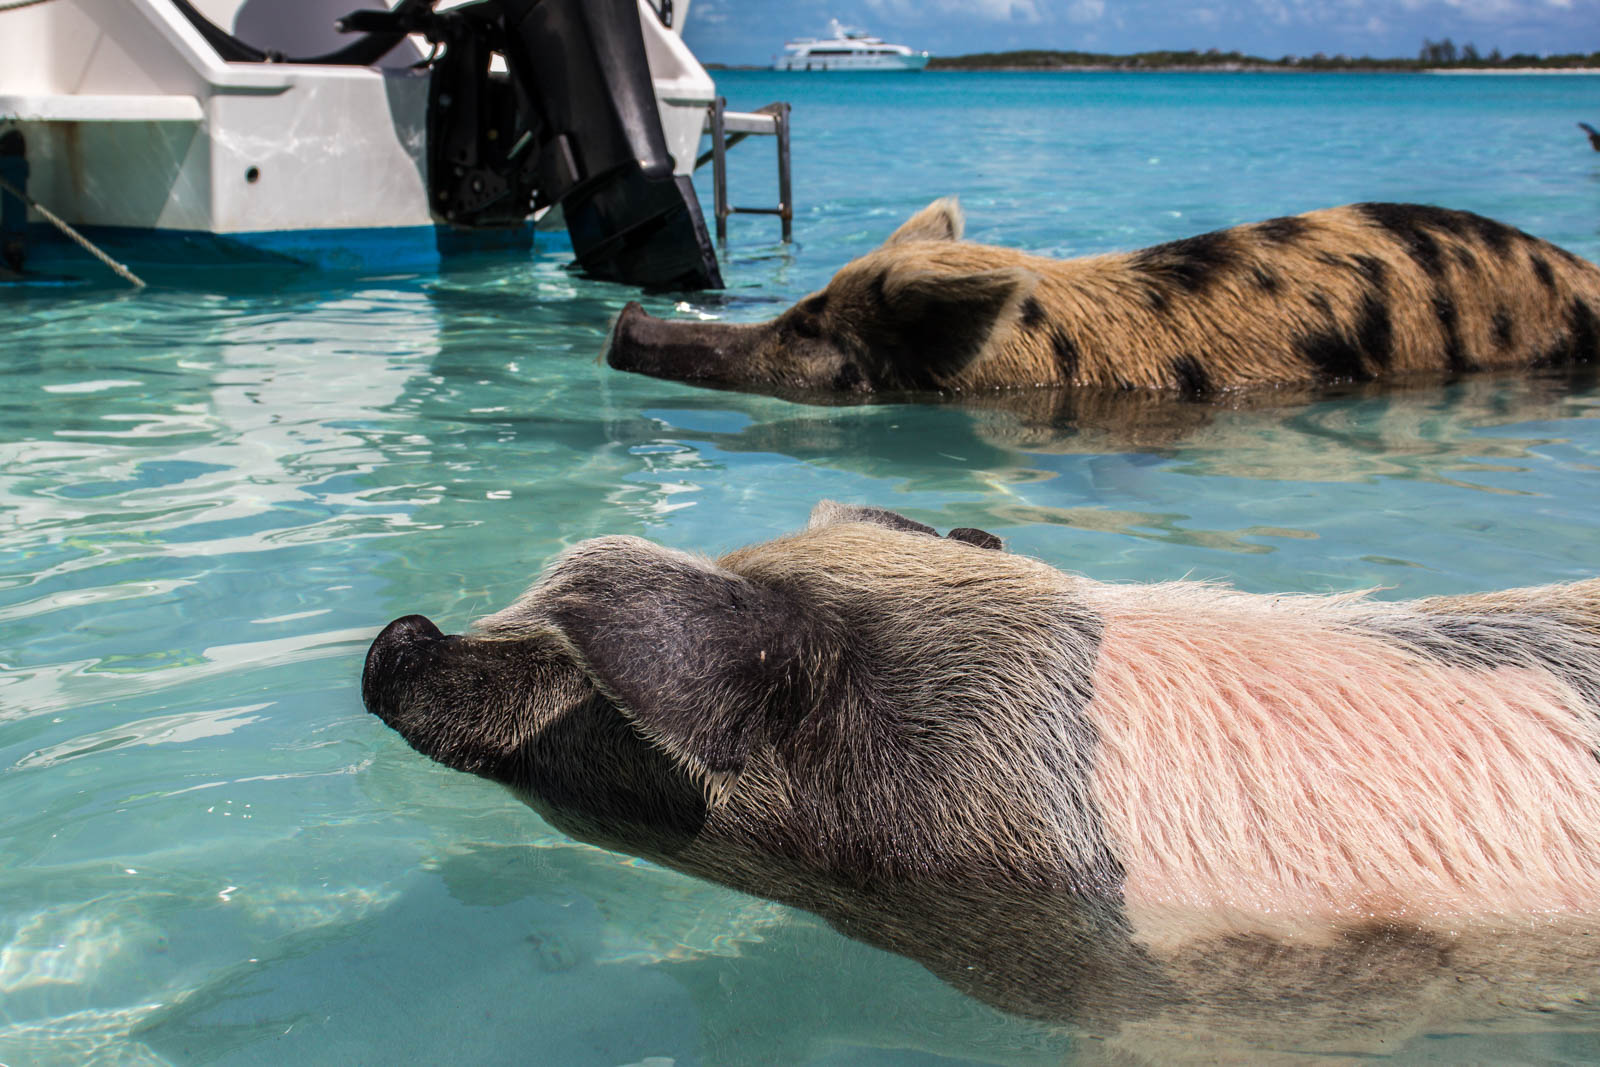 The Bahamas swimming pigs are always a good idea for a family excursion! Wondering what to do in Nassau cruise port? Take off on a Bahamas day trip to Exuma Cays.